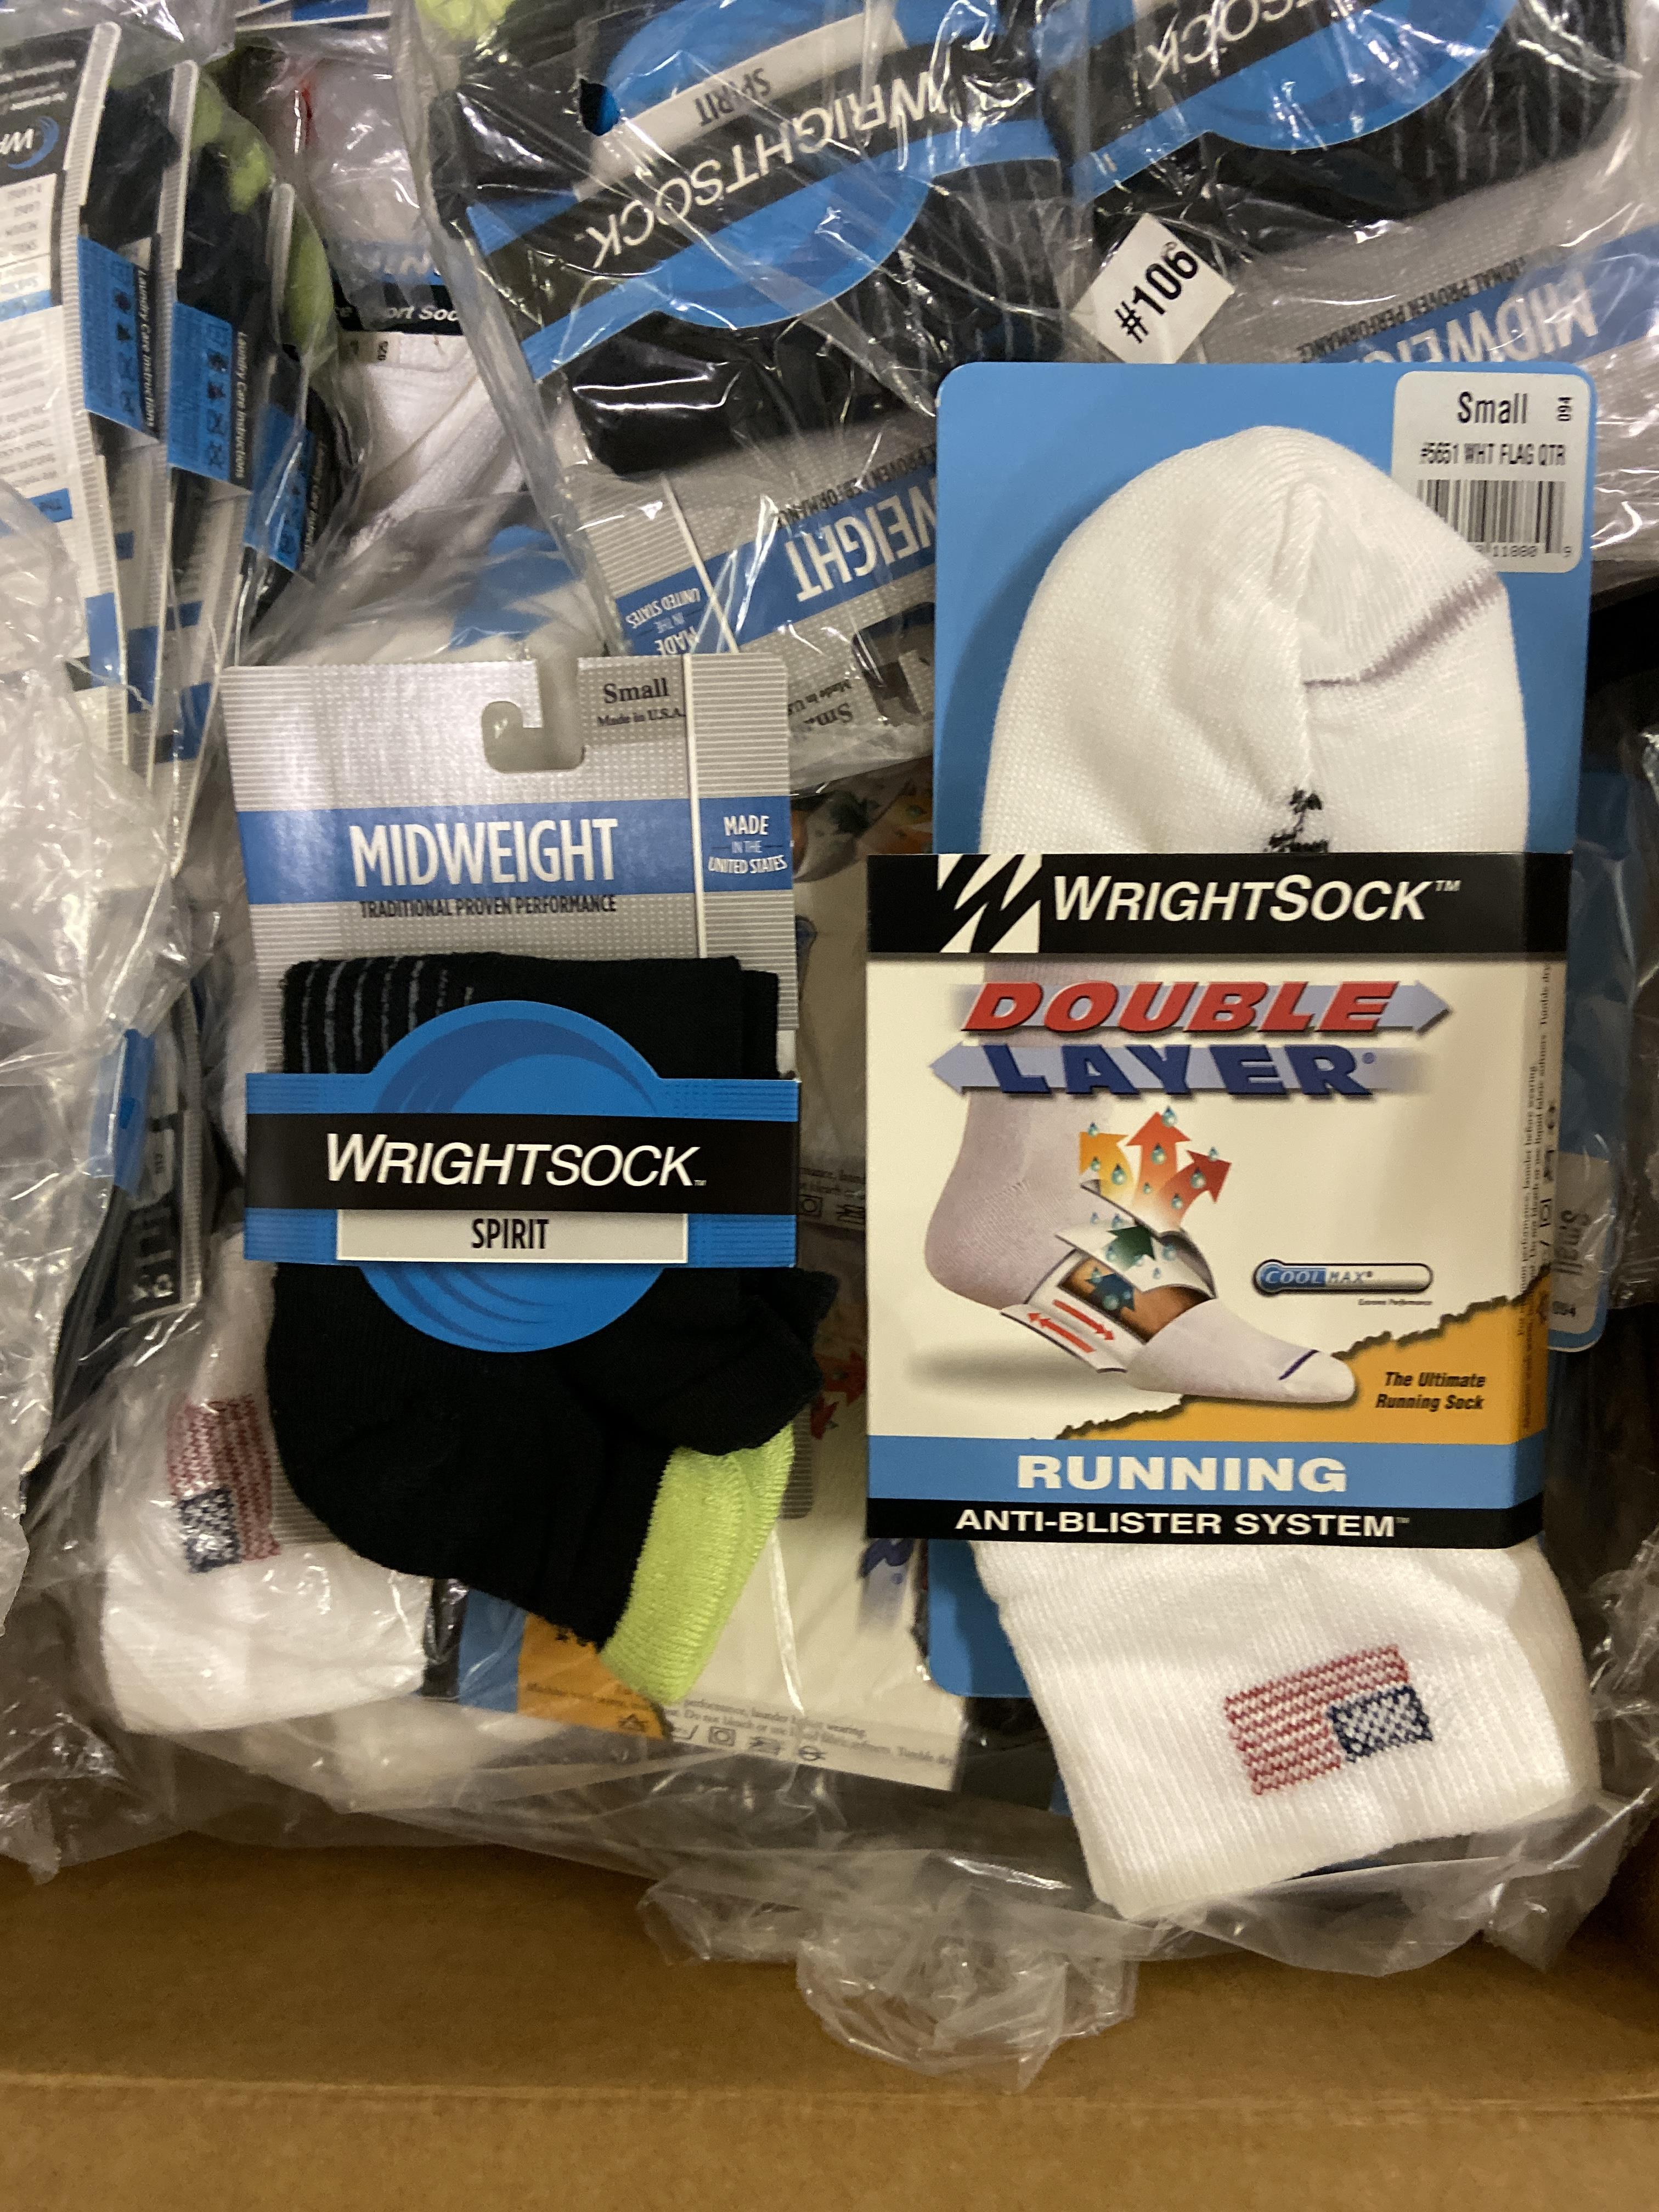 250+ packs of New Socks, Wrightsock Running and Midweight, Double Layer, Various Colors - Image 2 of 3